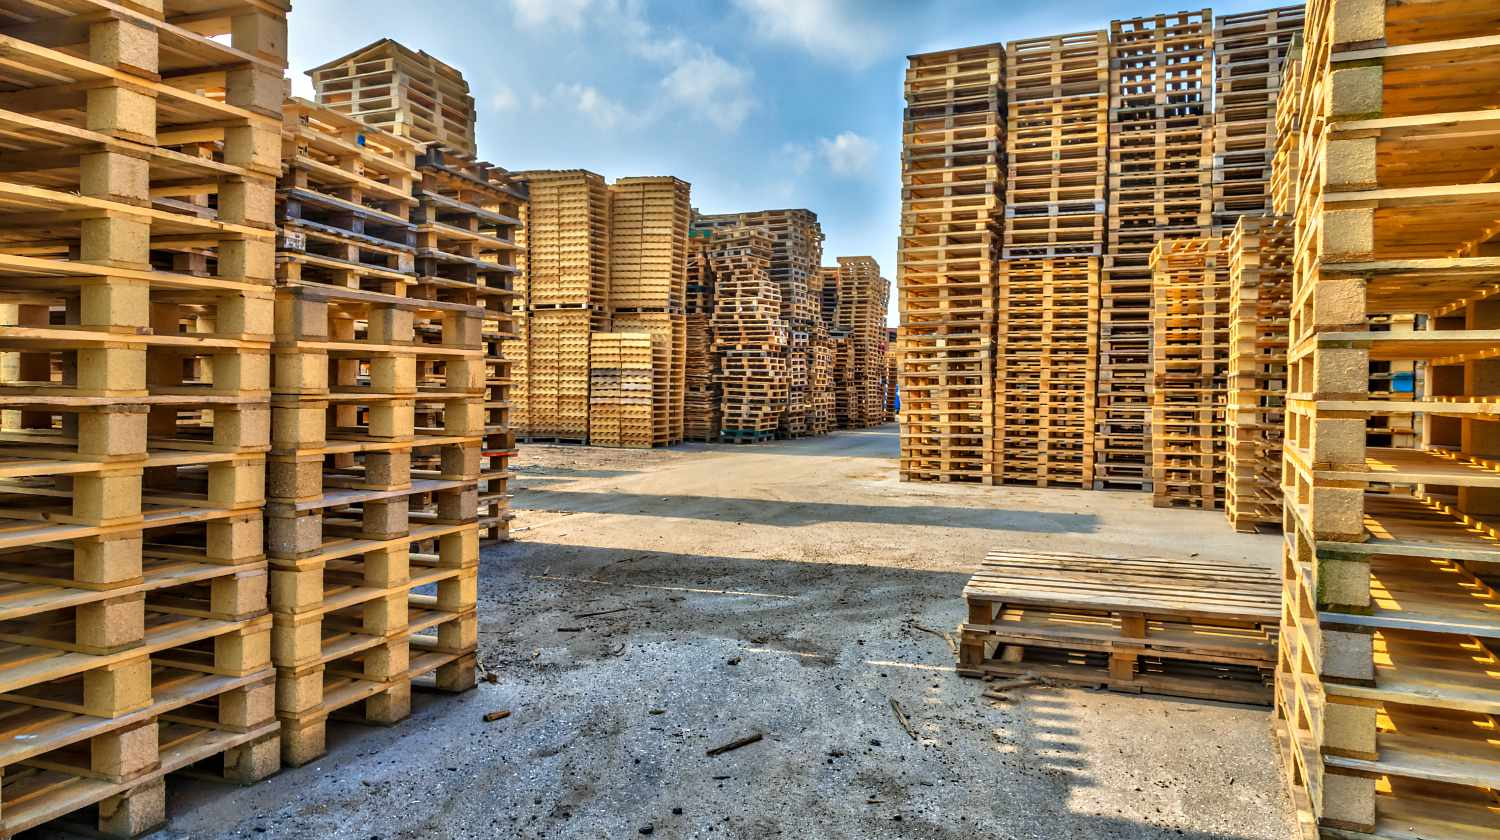 pallet wood recycling